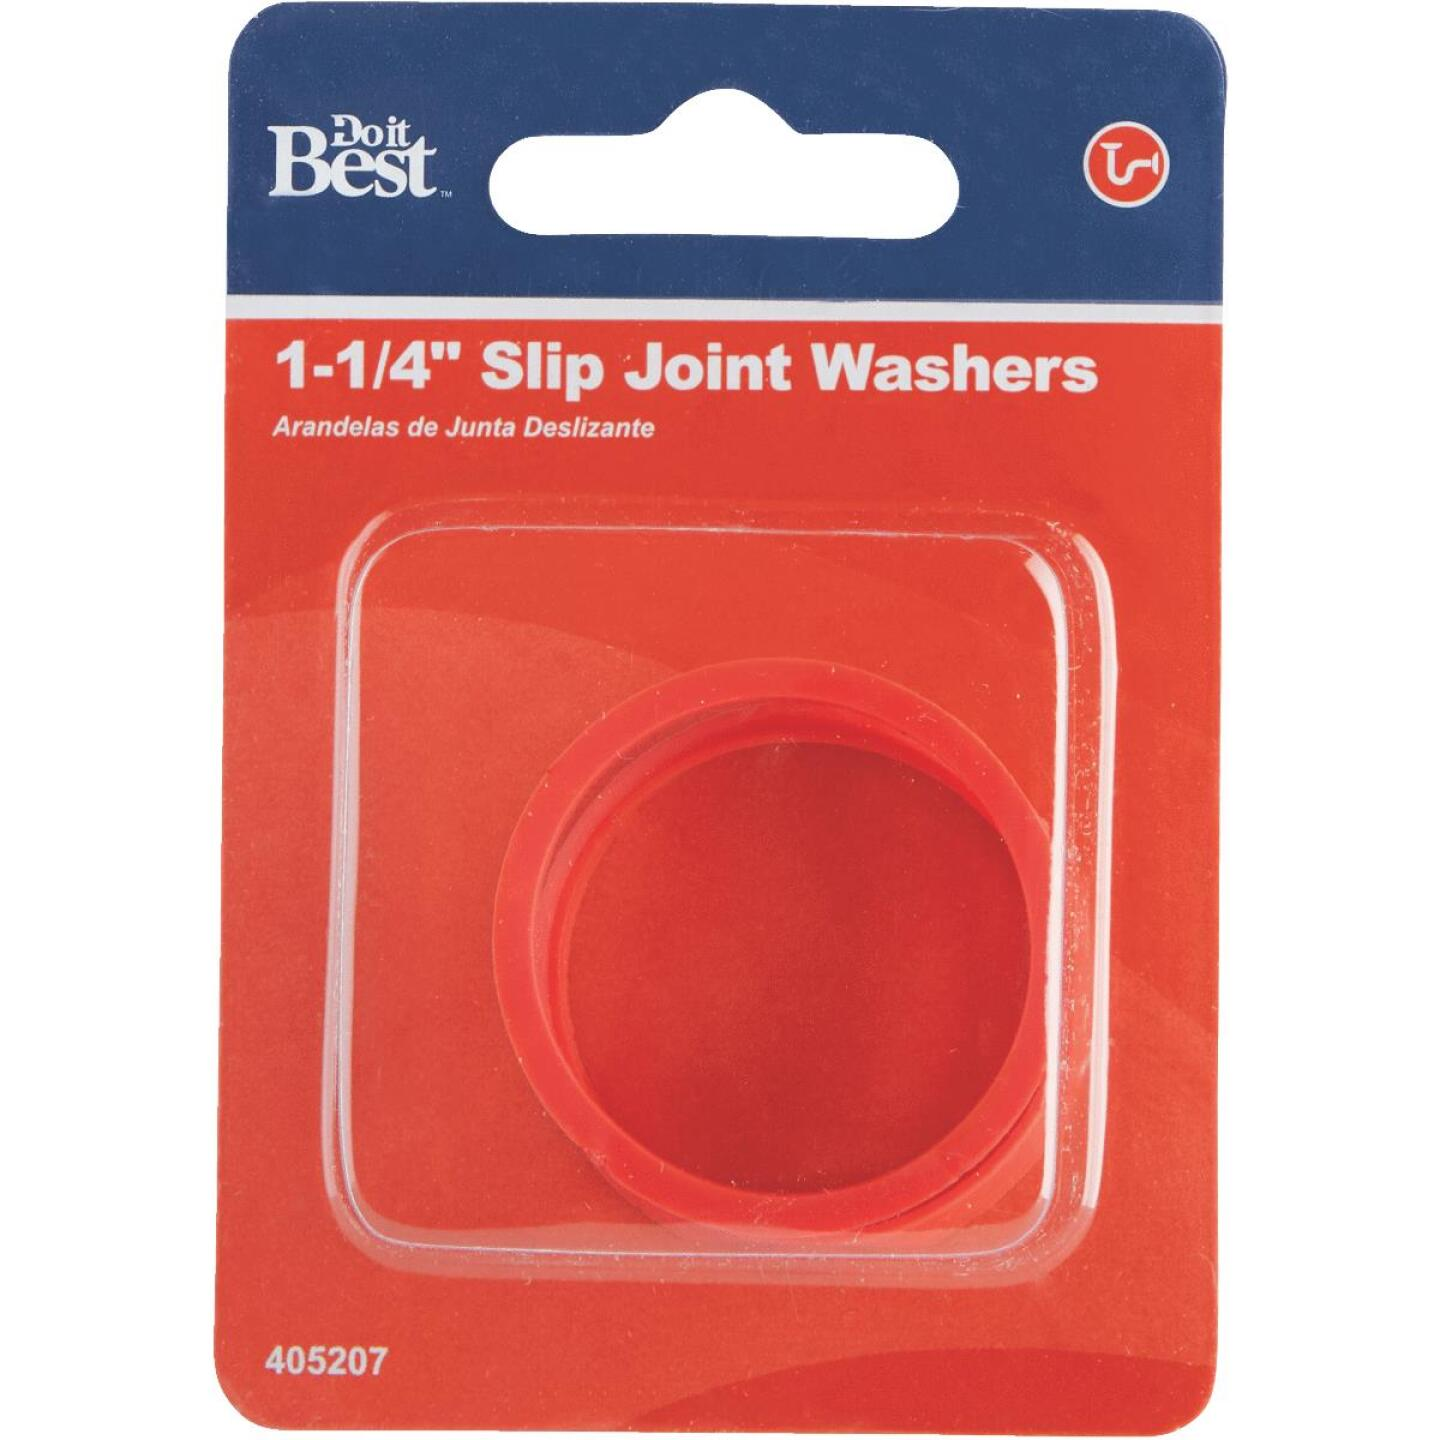 Do it 1-1/4 In. x 1-1/4 In. Black Rubber Slip Joint Washer (2 Pack) Image 2